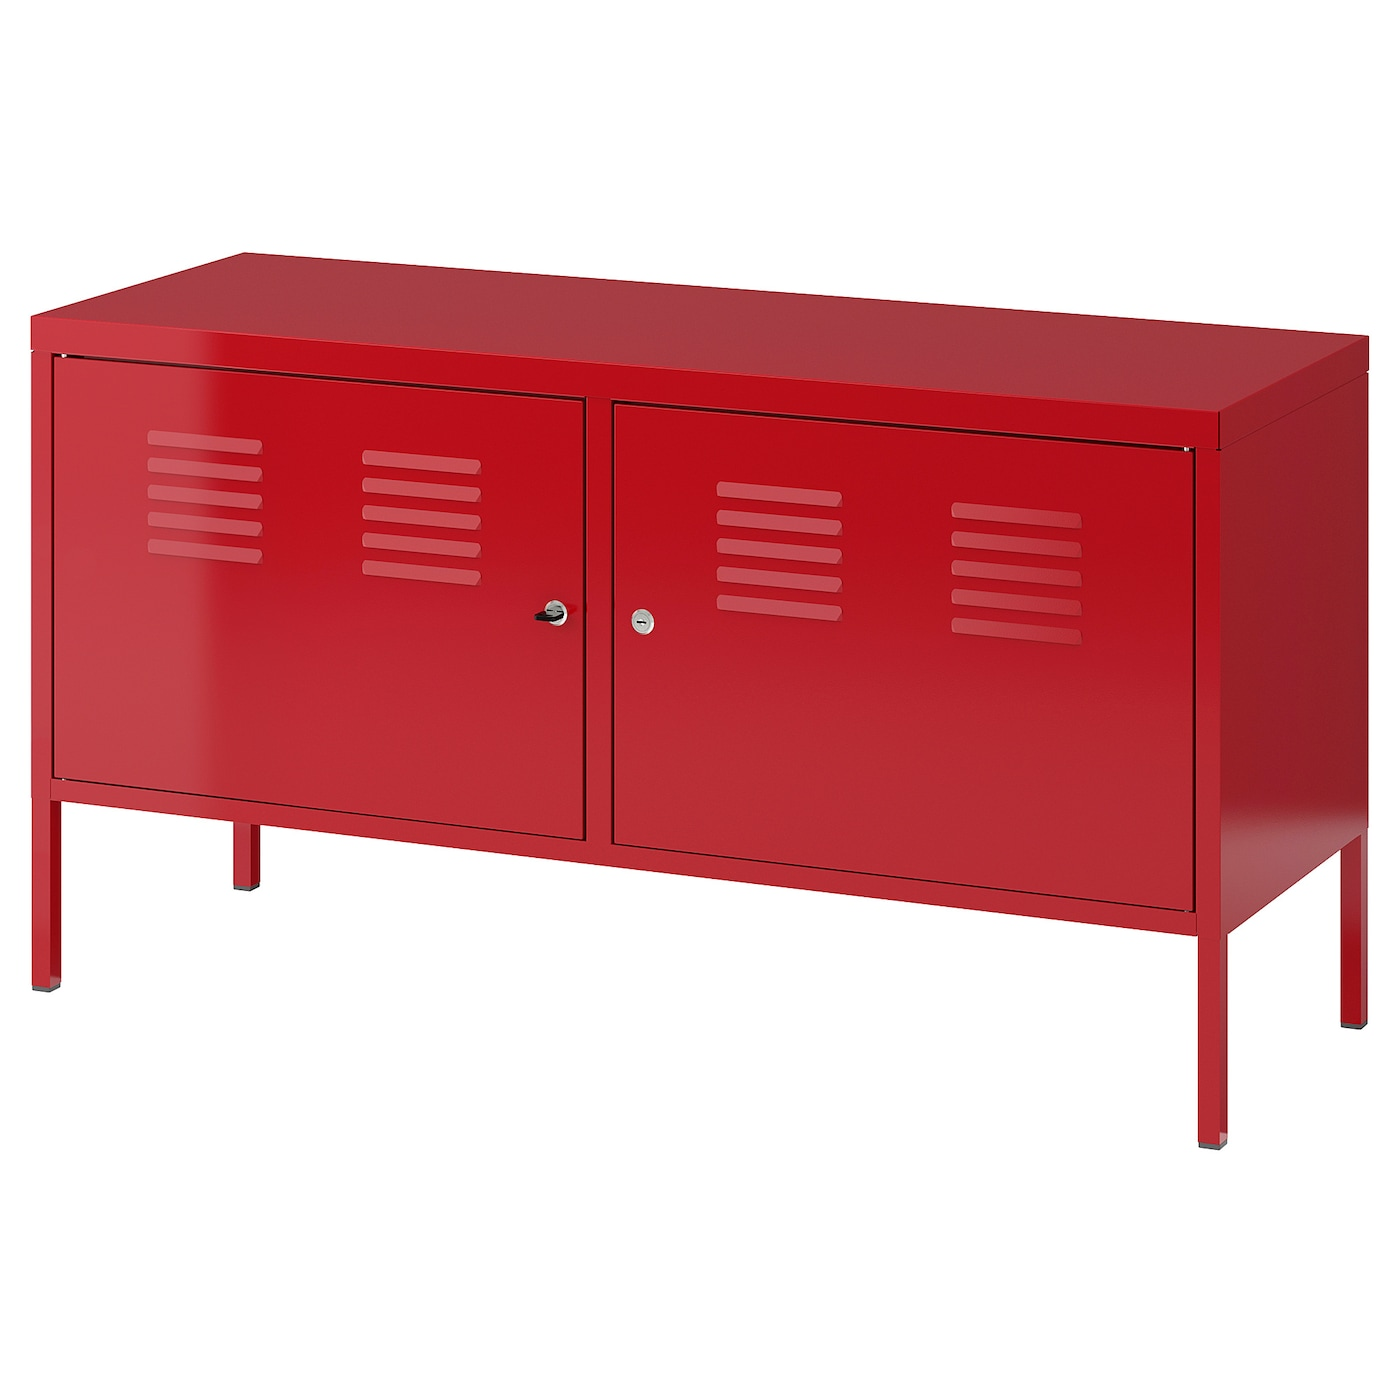 Ikea Meuble Metal Ikea Ps Cabinet Red